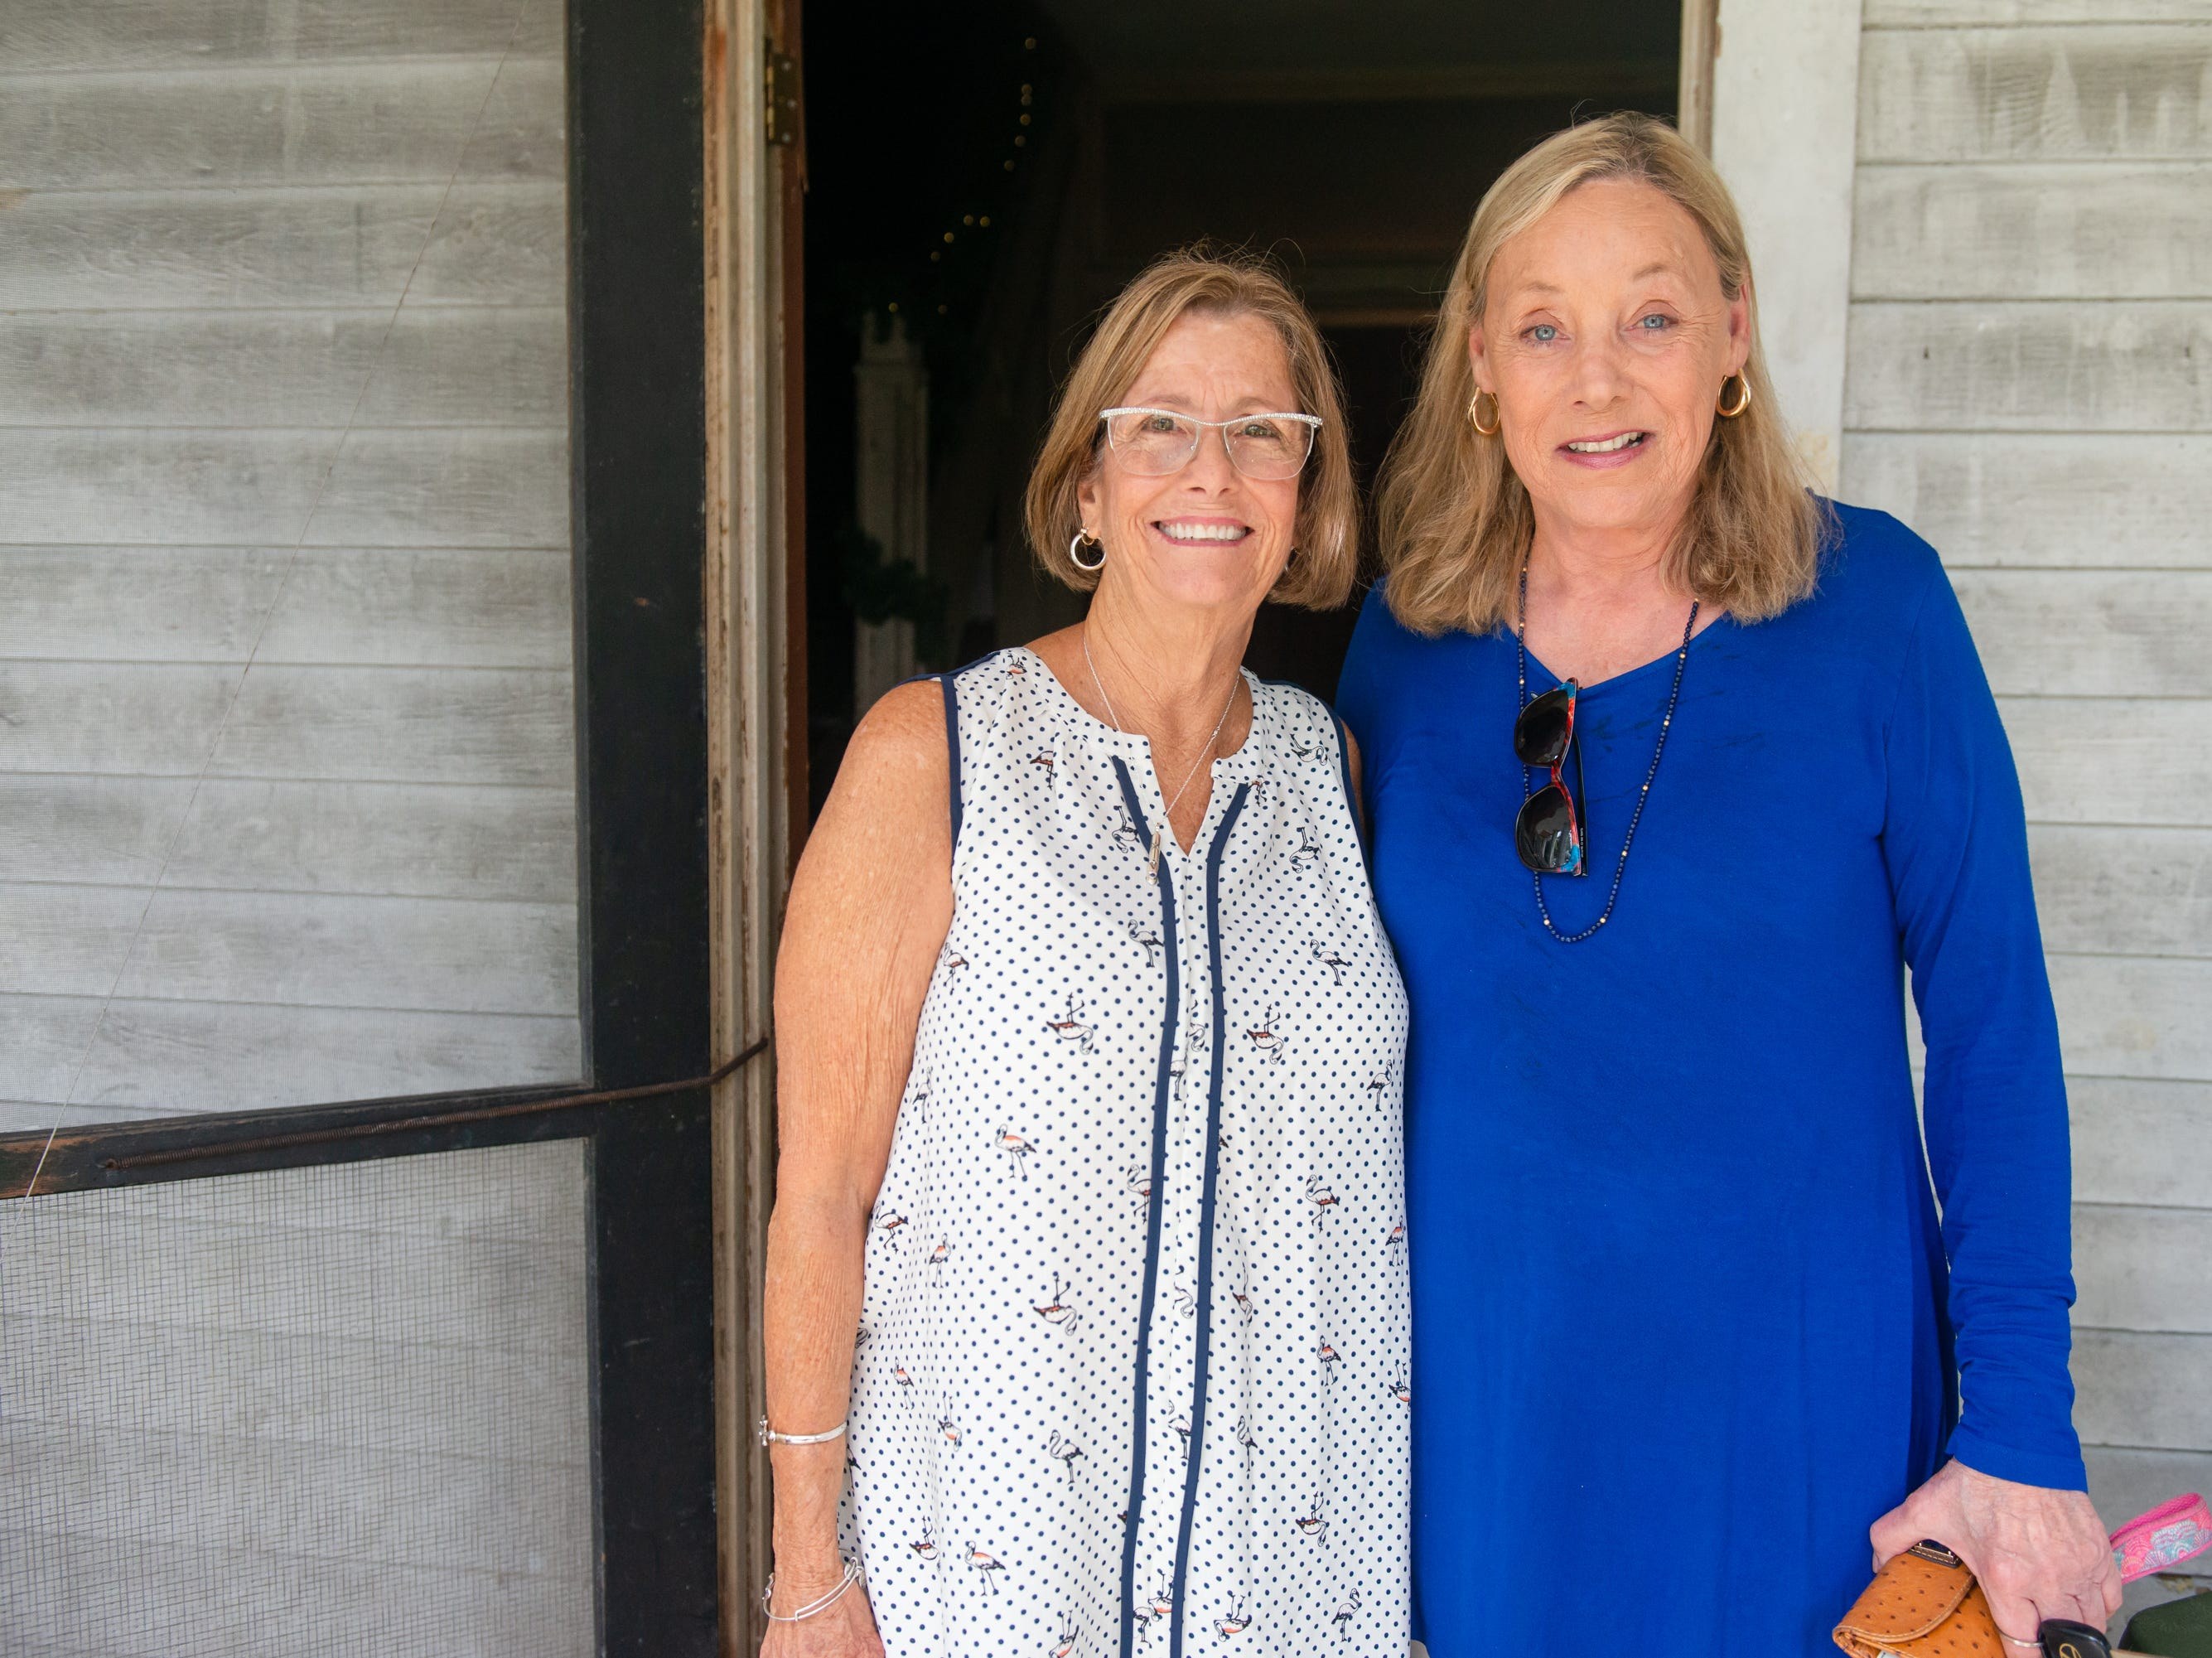 Jean Davis and Sherra Cameruci at the Christmas in July event, which raised money to restore the Green Gables Victorian house in Melbourne.